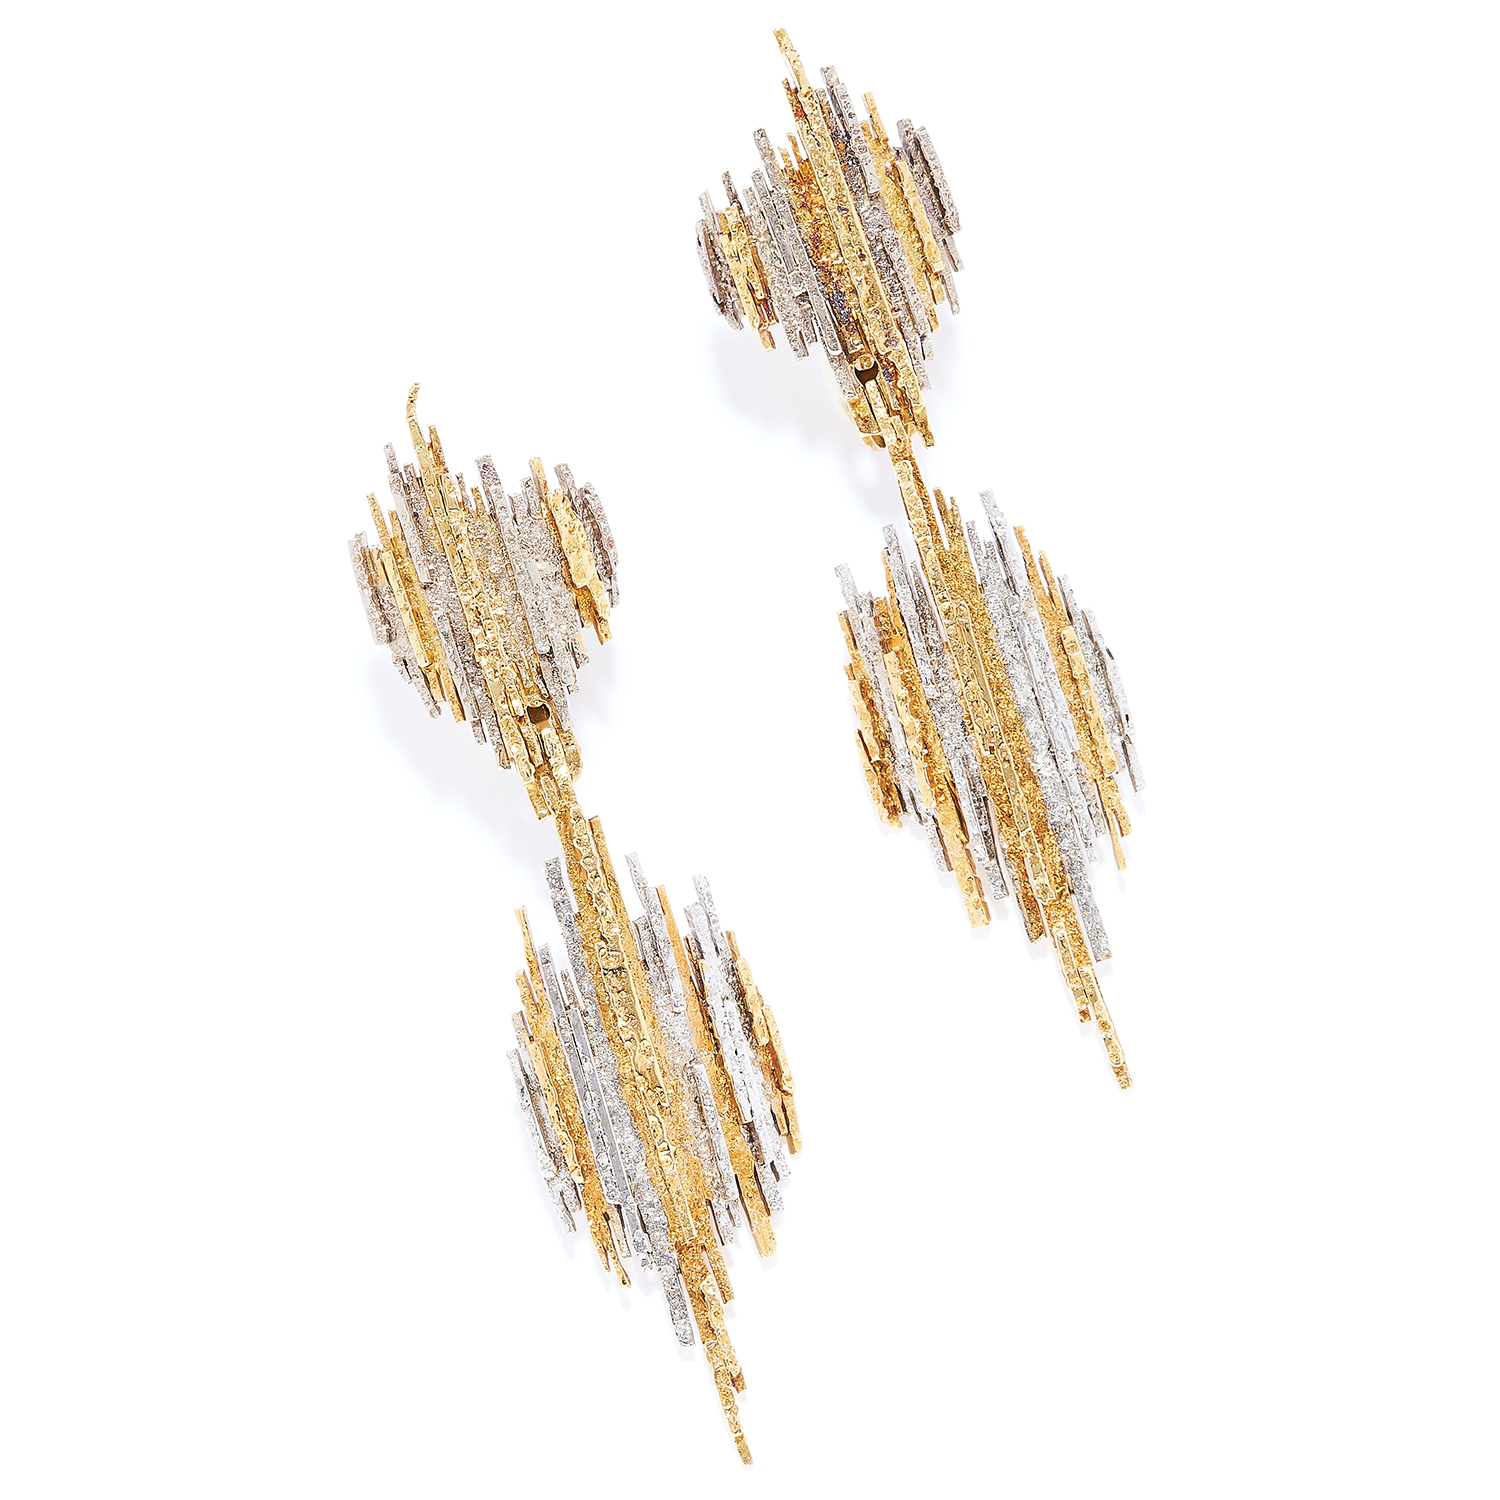 TWO TONE GOLD DAY-TO-NIGHT EARRINGS, CHARLES DE TEMPLE, 1979 in 18ct yellow gold, each comprising of